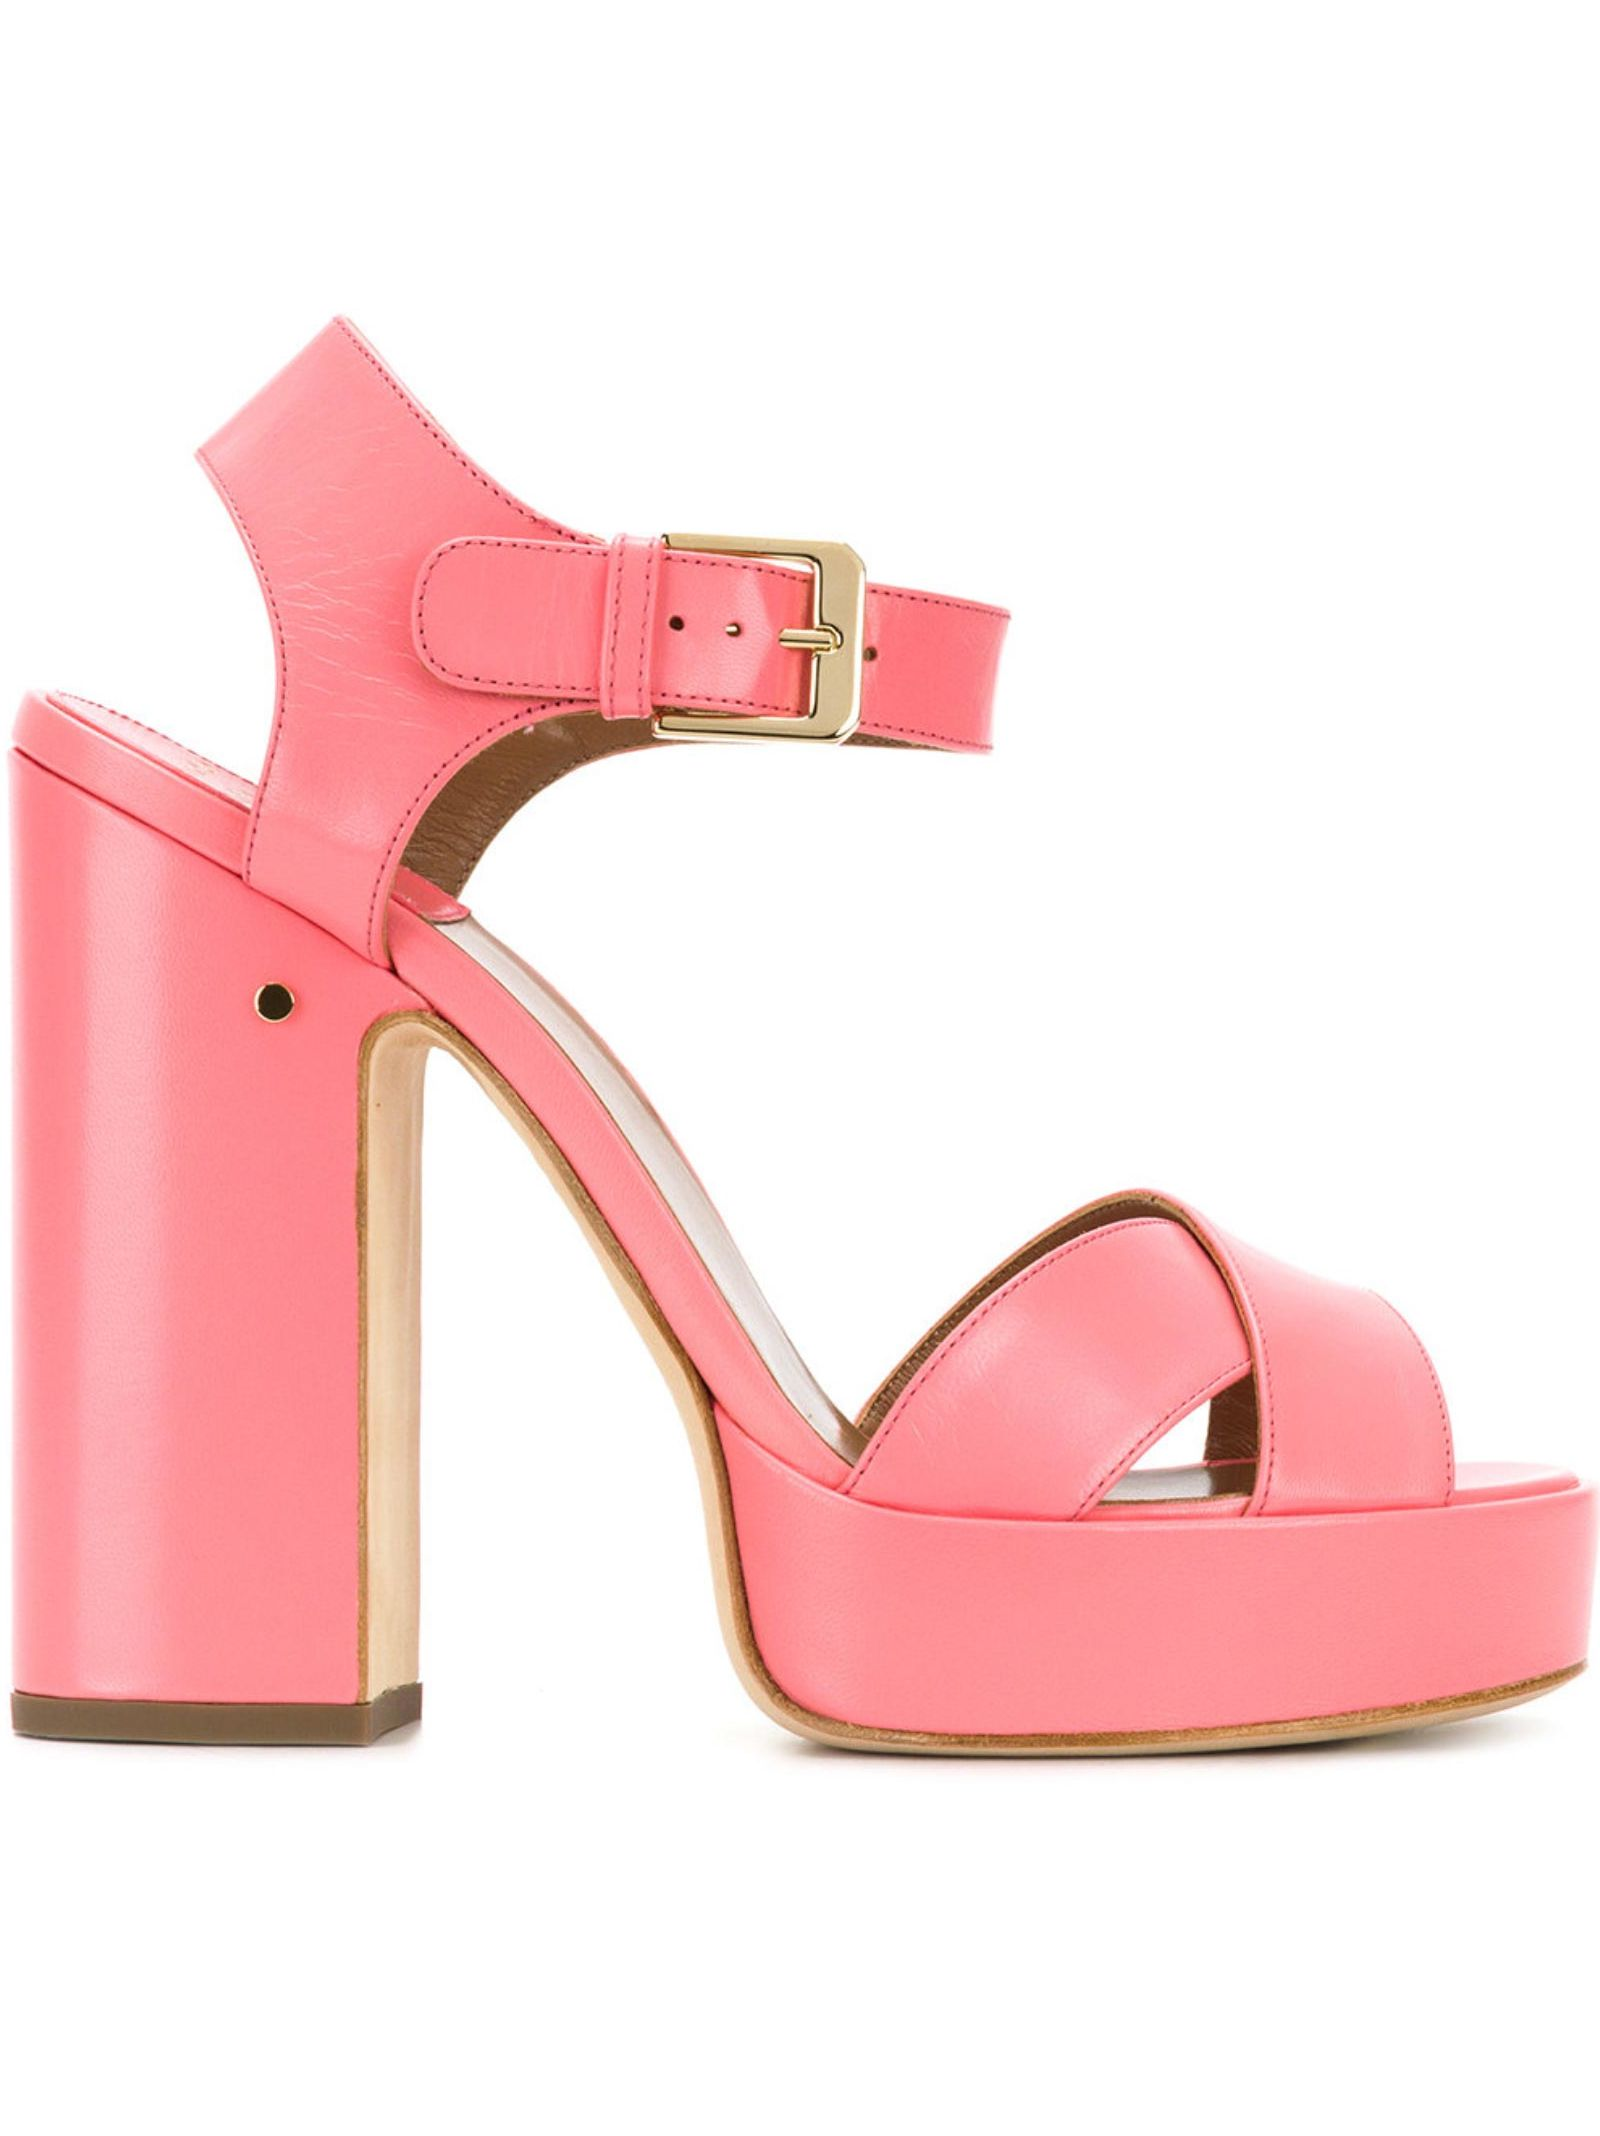 Rosan sandals - Pink & Purple Laurence Dacade